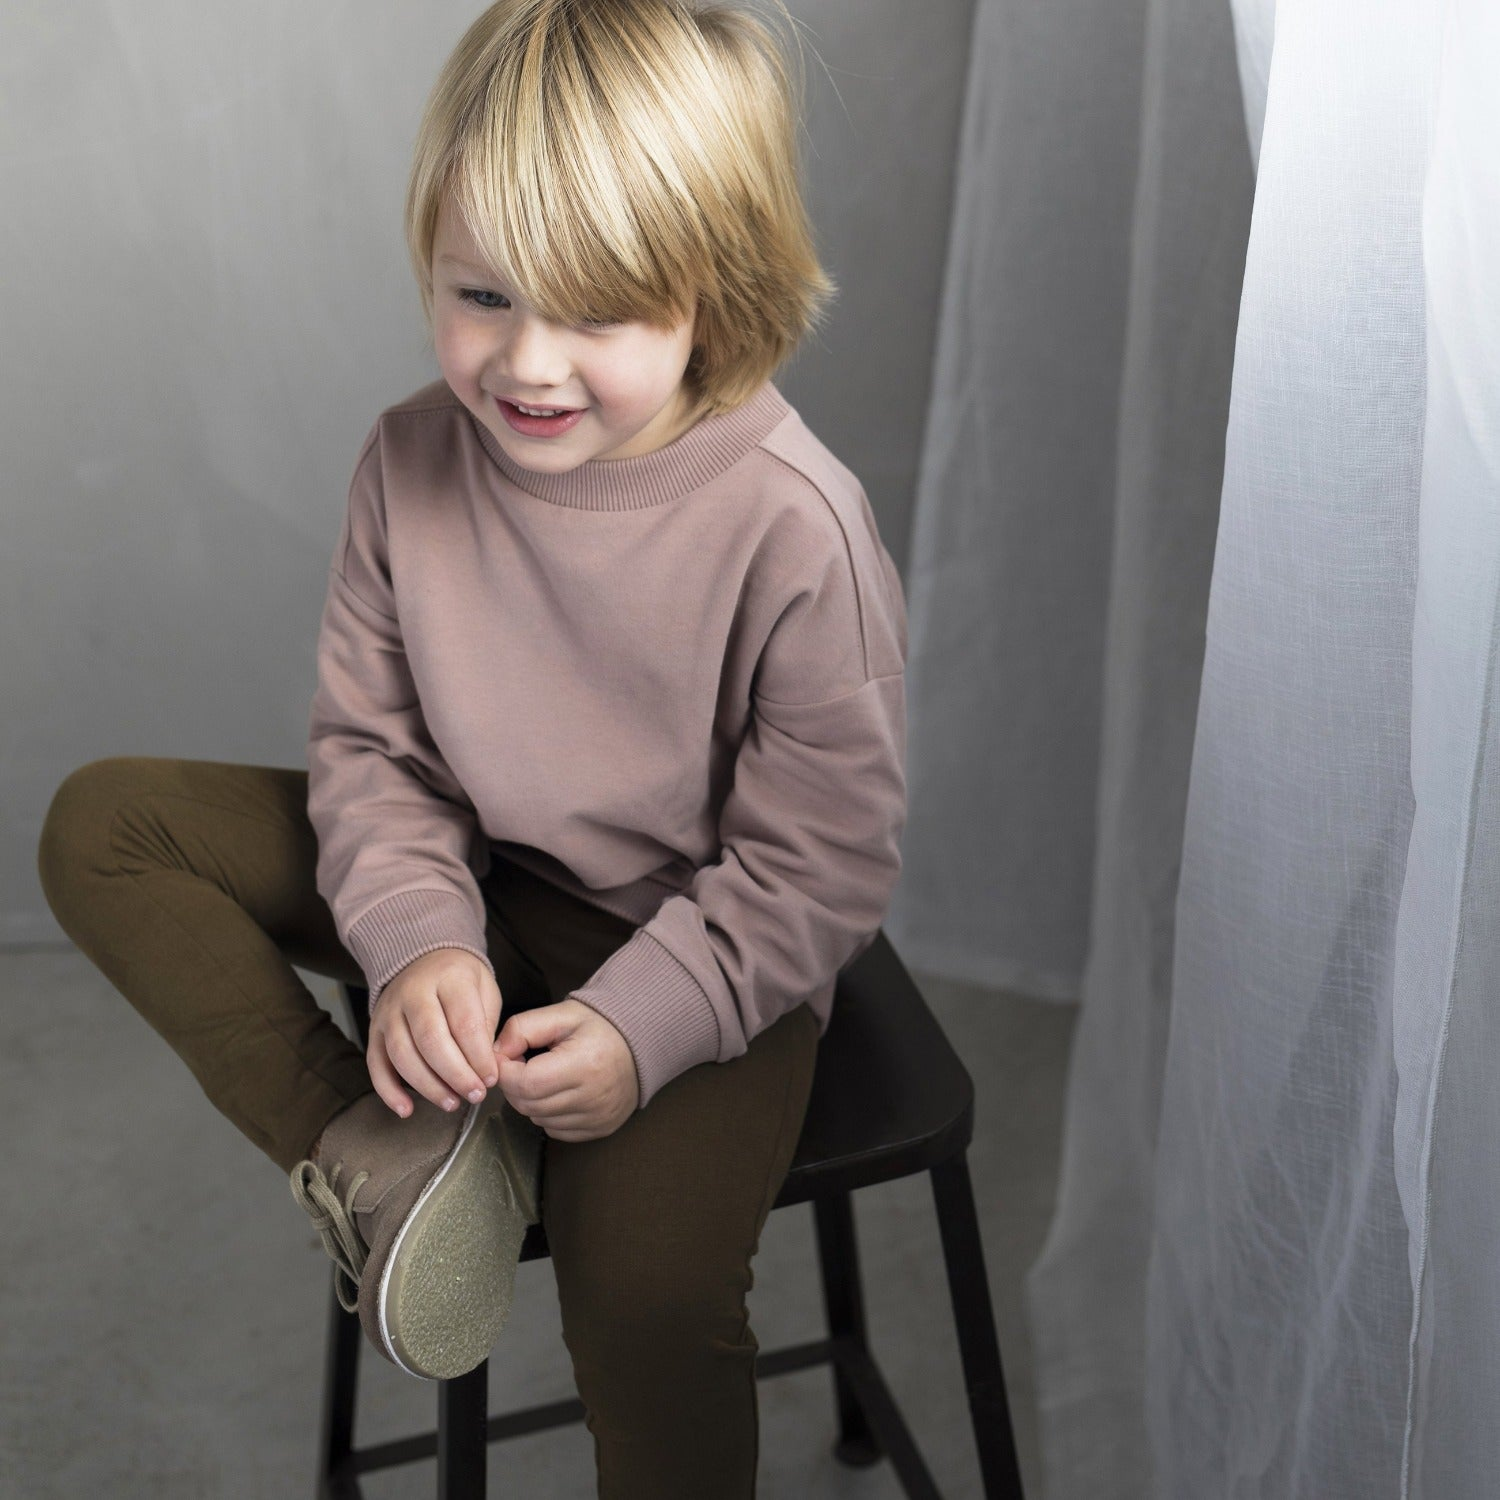 A little boy wearing the Oversized Sweater colour Powder by sustainable kidswear brand Phil&Phae